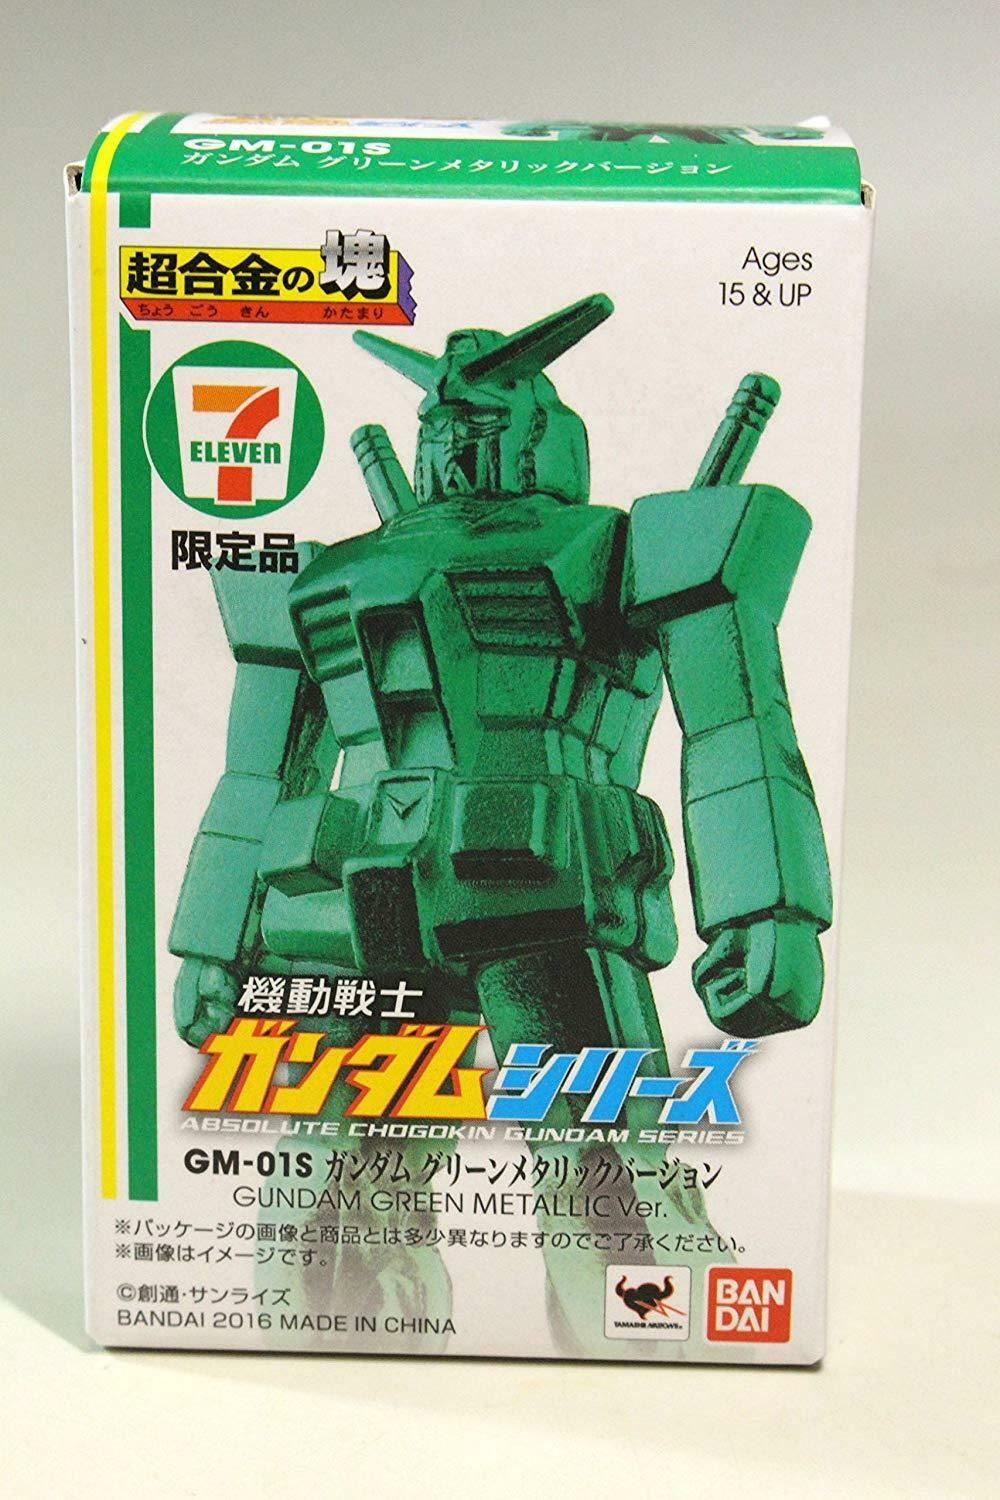 Gundam GM-01  Seven Eleven Limited vert Metallic Ver. 70  mm PVC Figure  meilleure mode